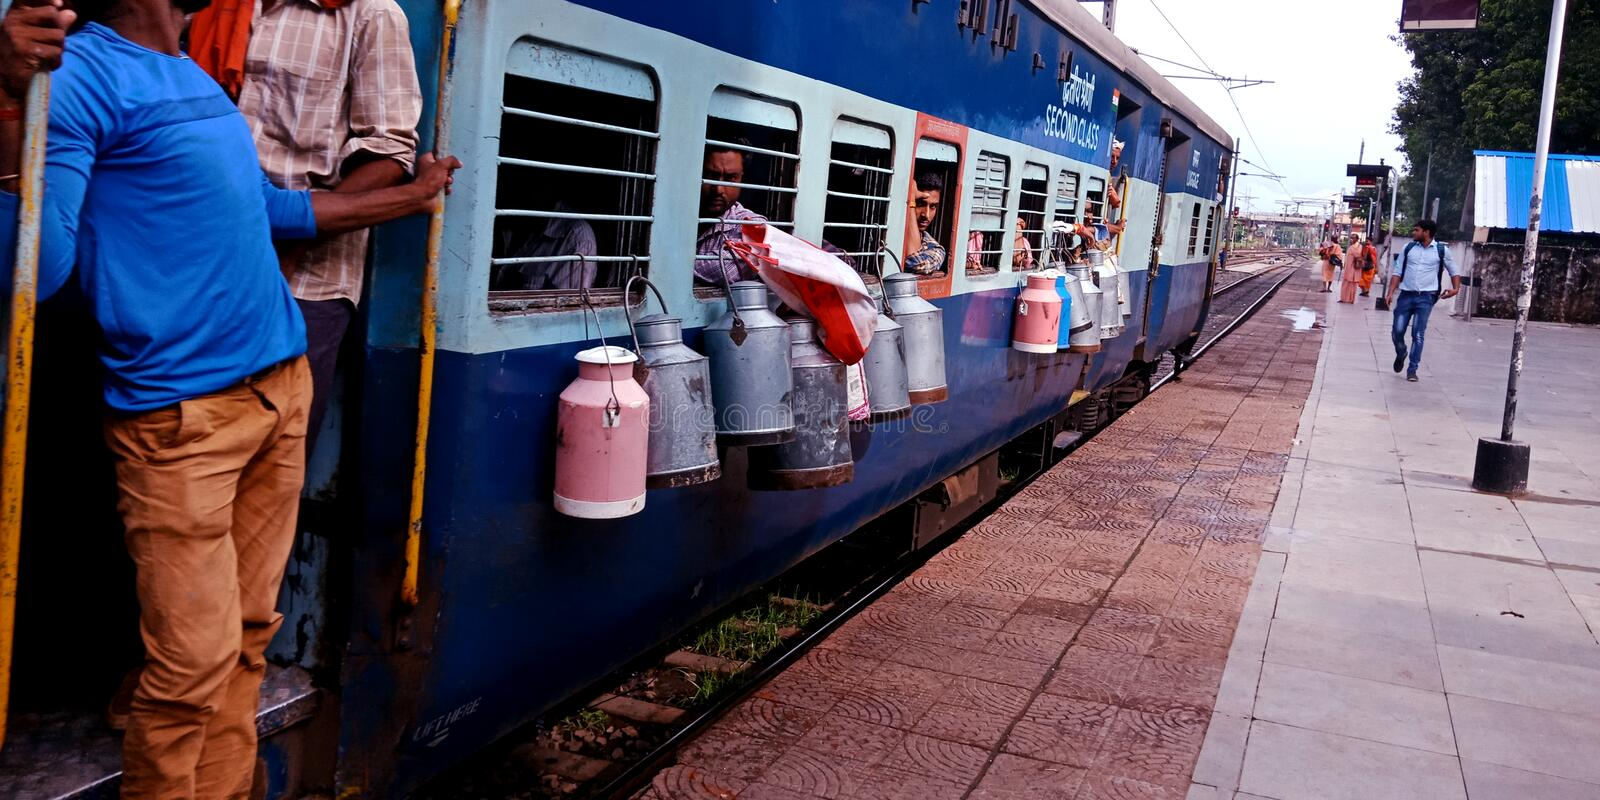 milk container hanging on milk boxes hanging out in train at indian railway station in india oct 2019 royalty free stock photos